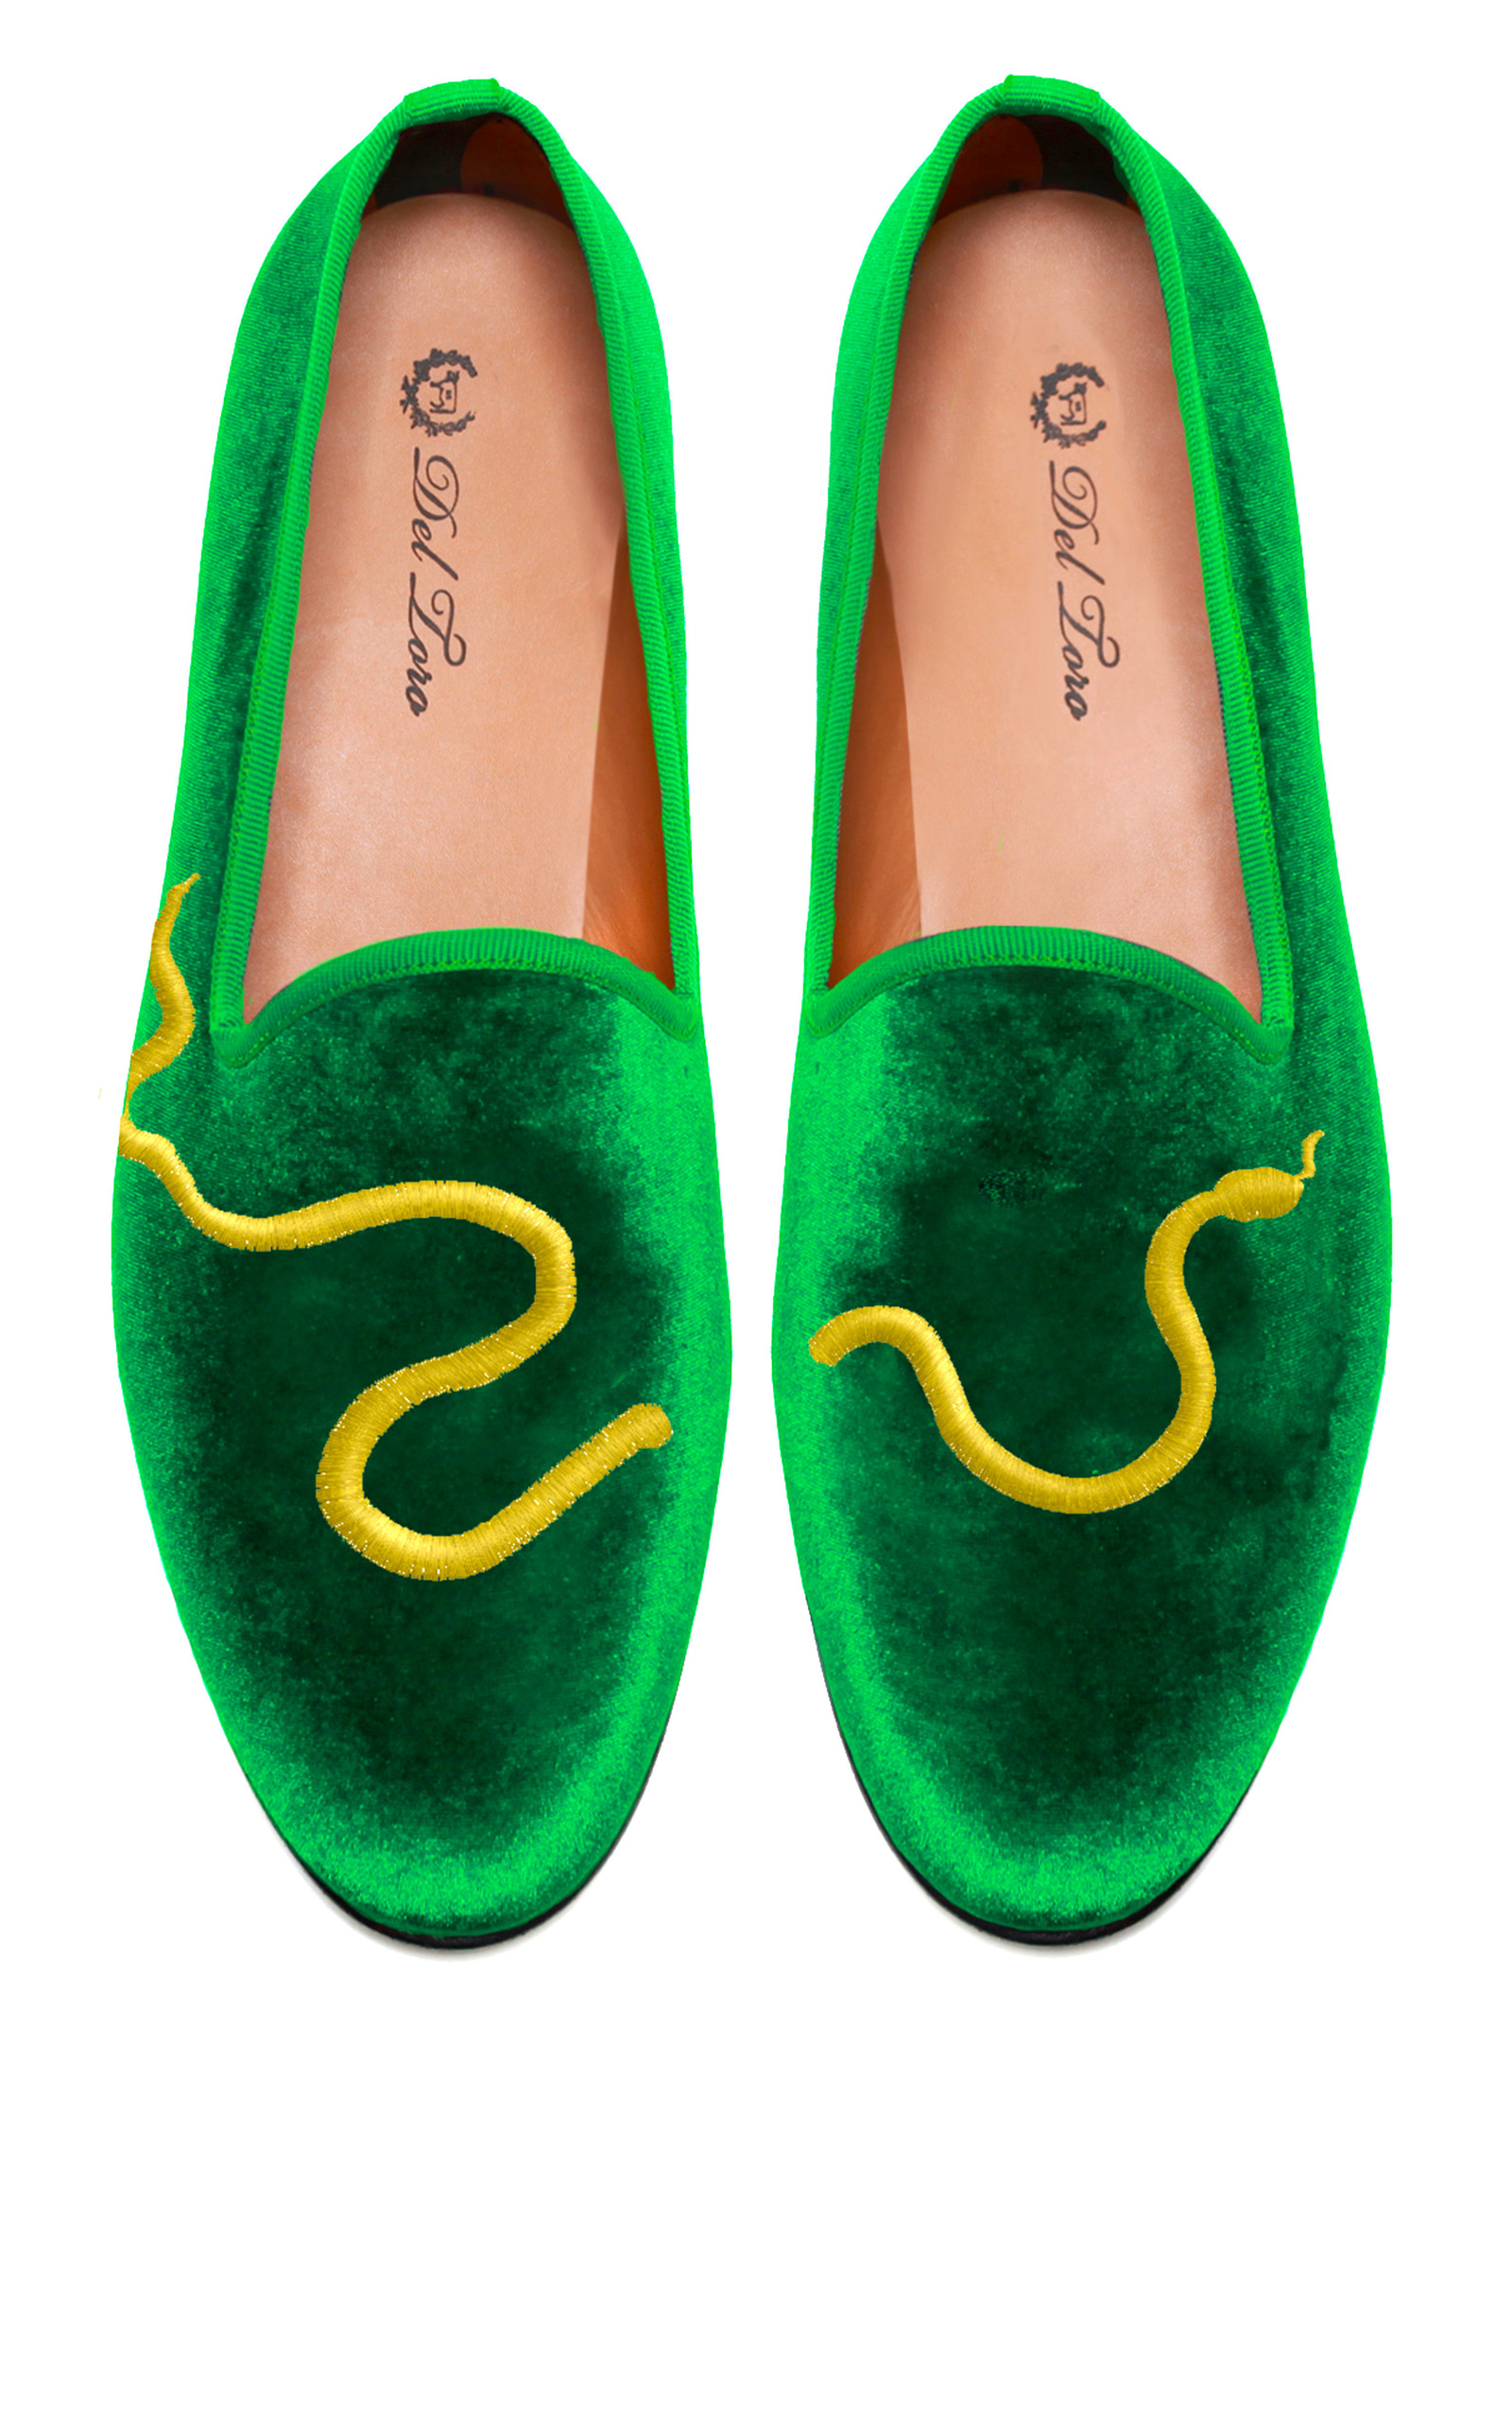 60cad06c975 Del ToroPrince Albert Green Velvet Slipper Loafers With Snake Embroidery.  CLOSE. Loading